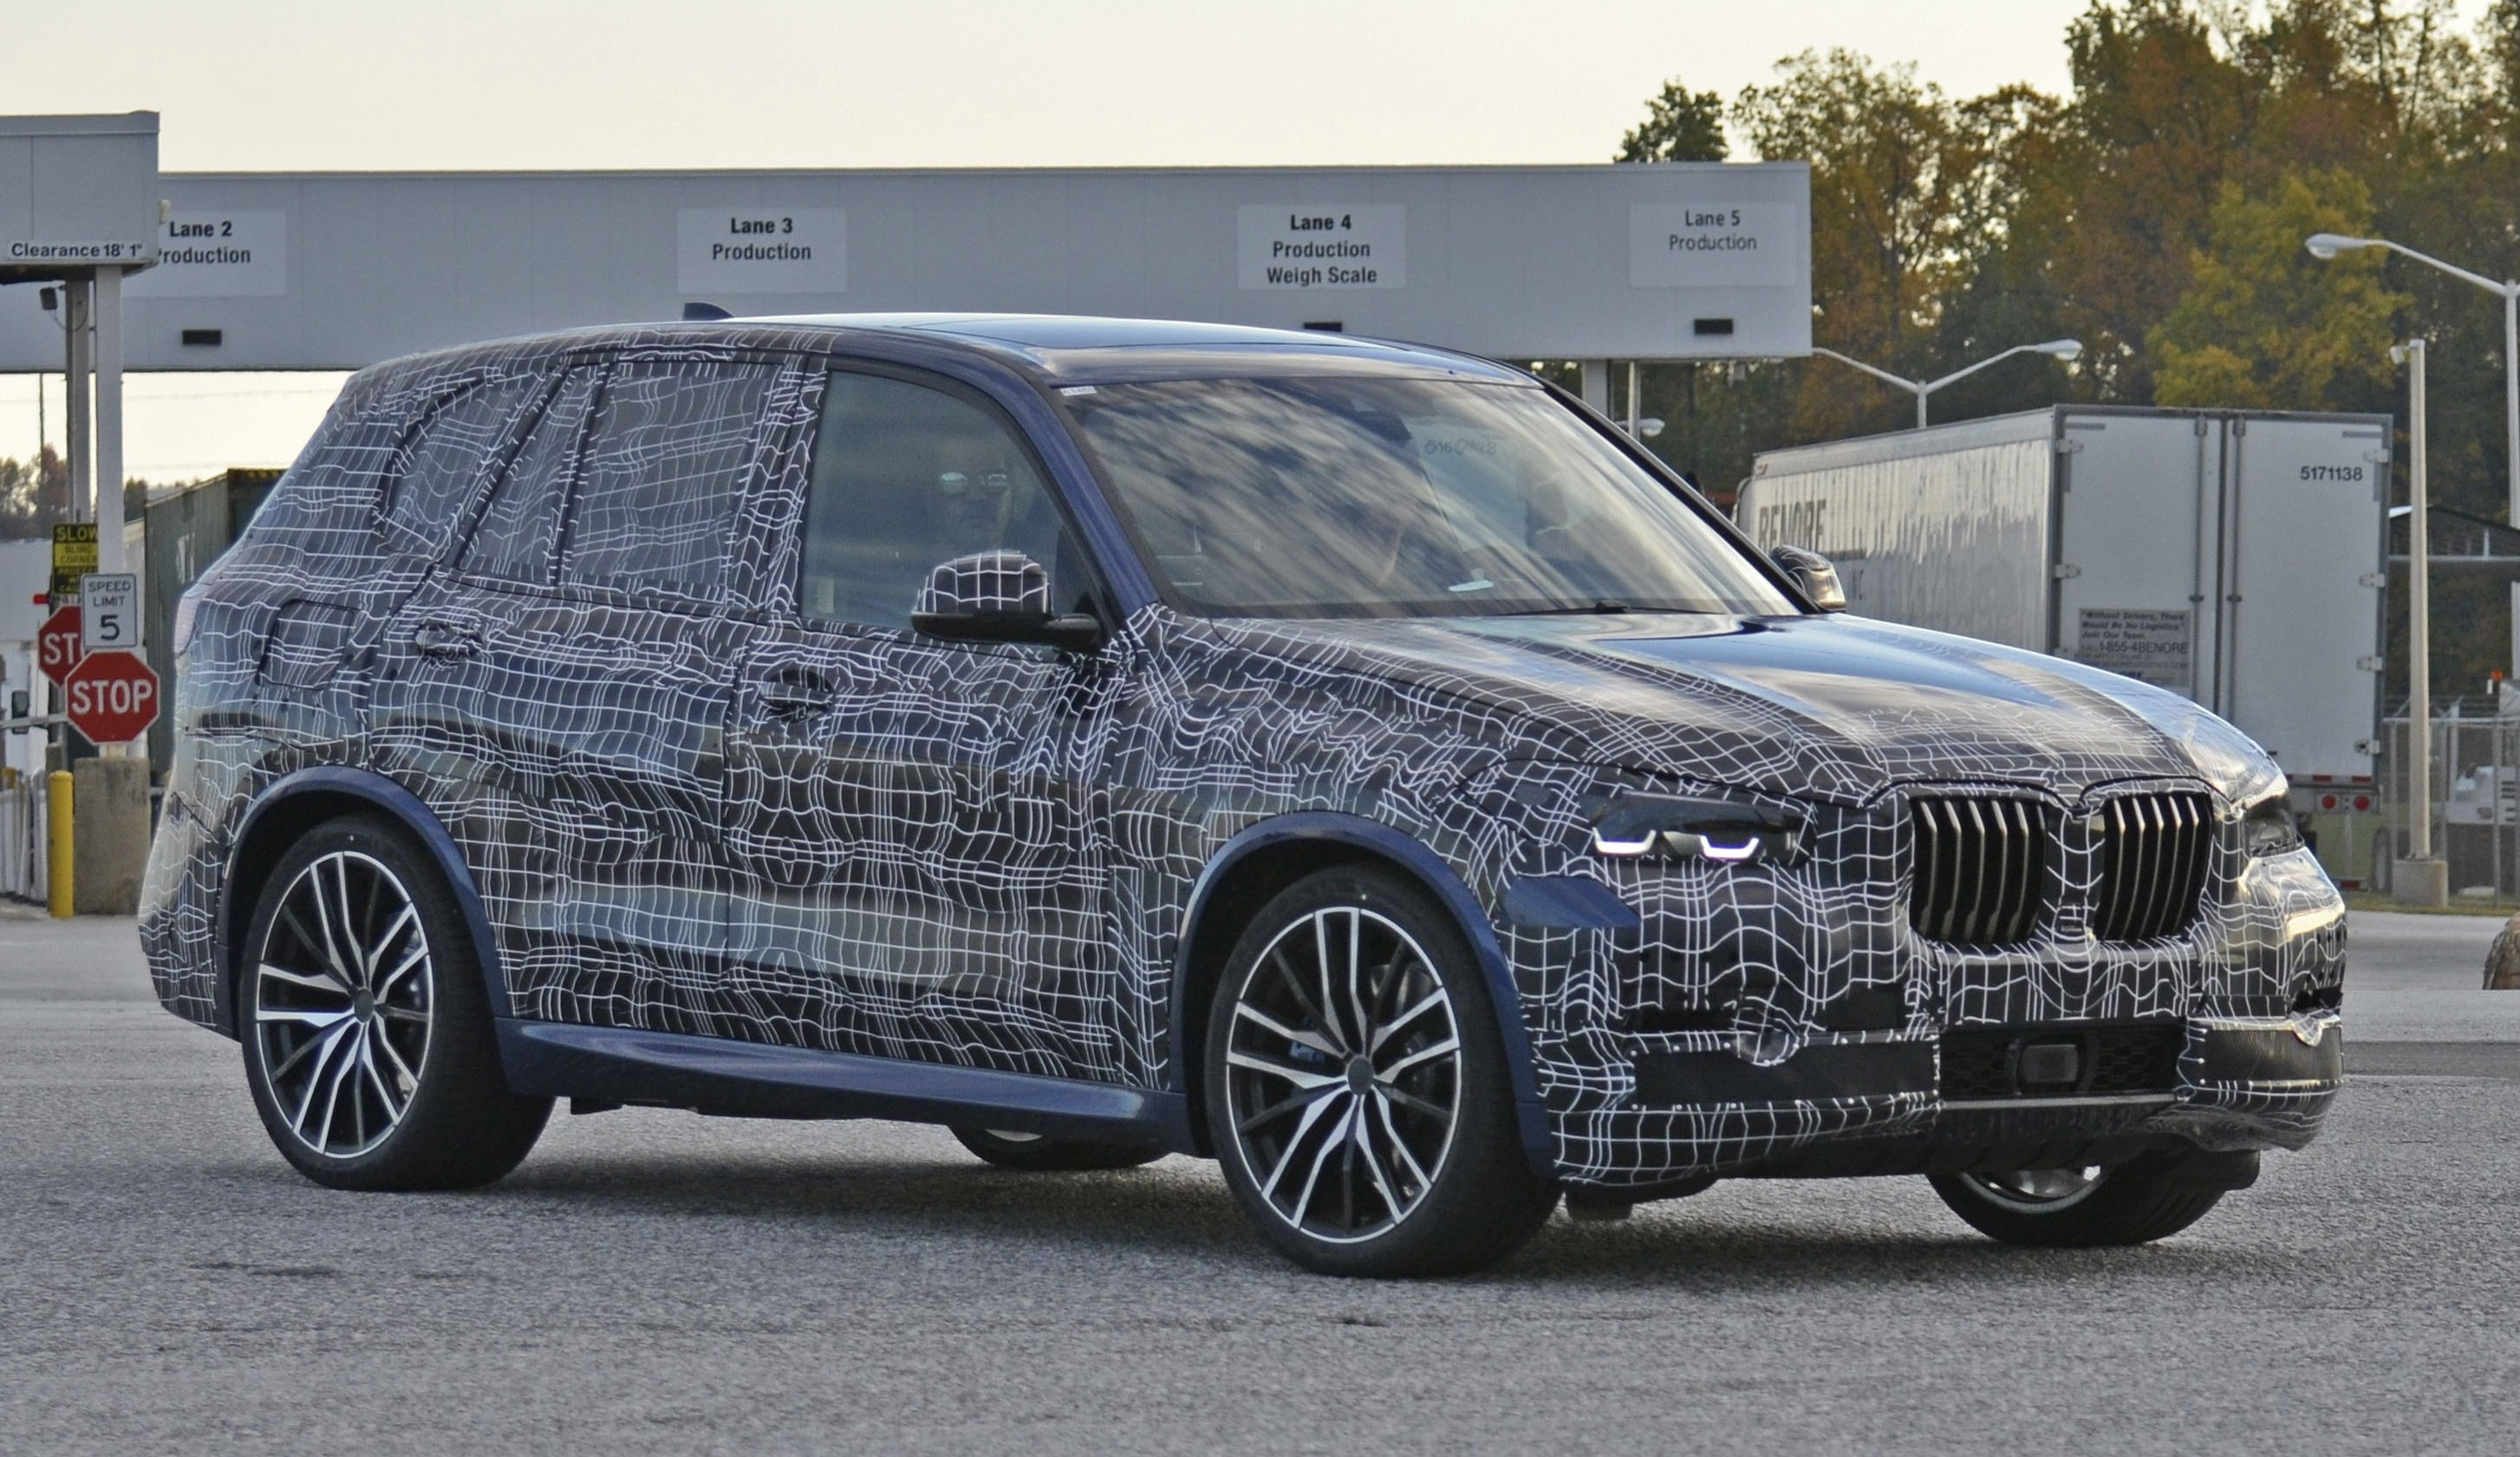 BMW X5 Spyshots - Fourth Testing Session